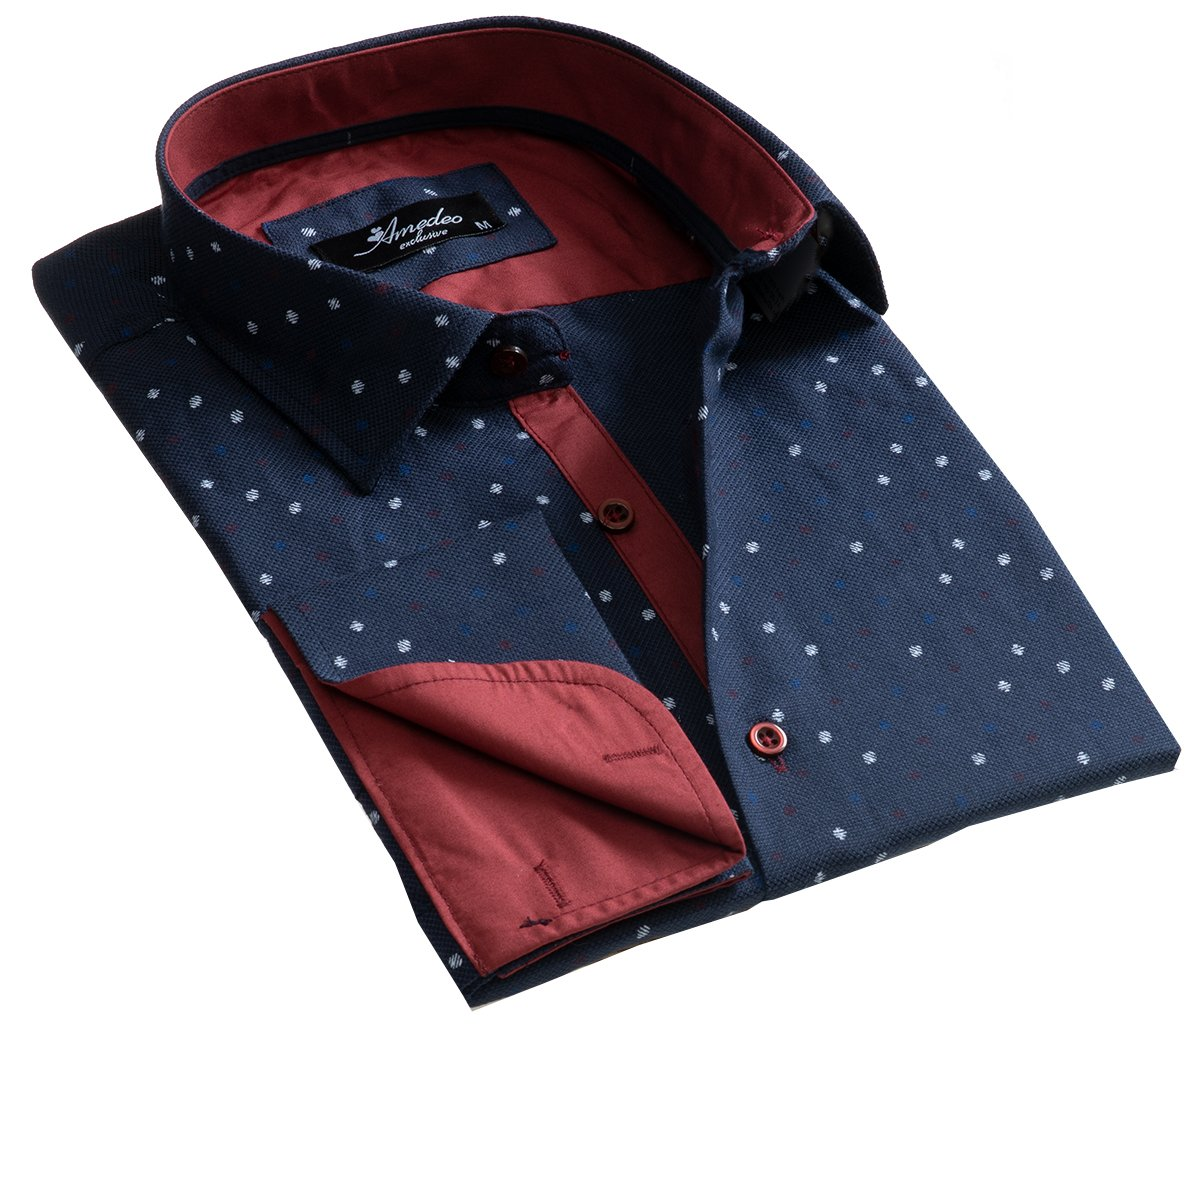 Dark Blue Mens Slim Fit French Cuff Dress Shirts with Cufflink Holes - Casual and Formal - Amedeo Exclusive